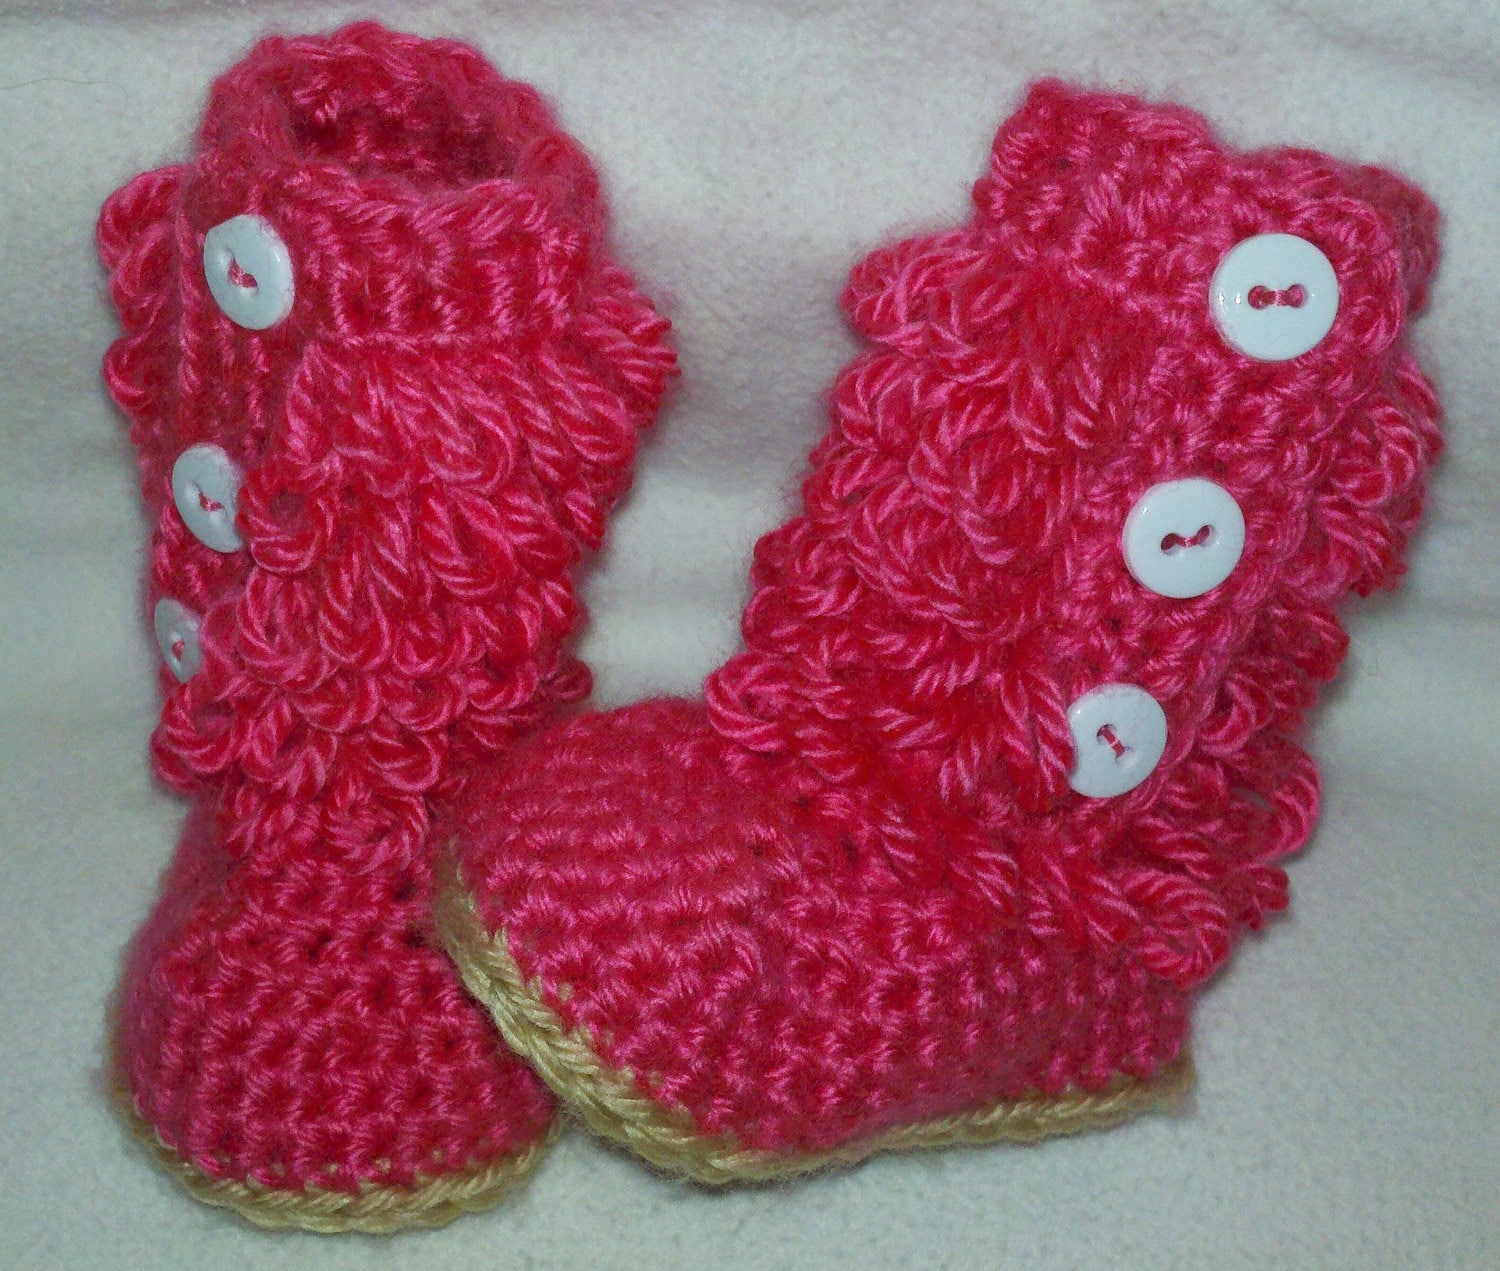 Crochet Patterns Central : crochet pattern central free shoe and sandal crochet